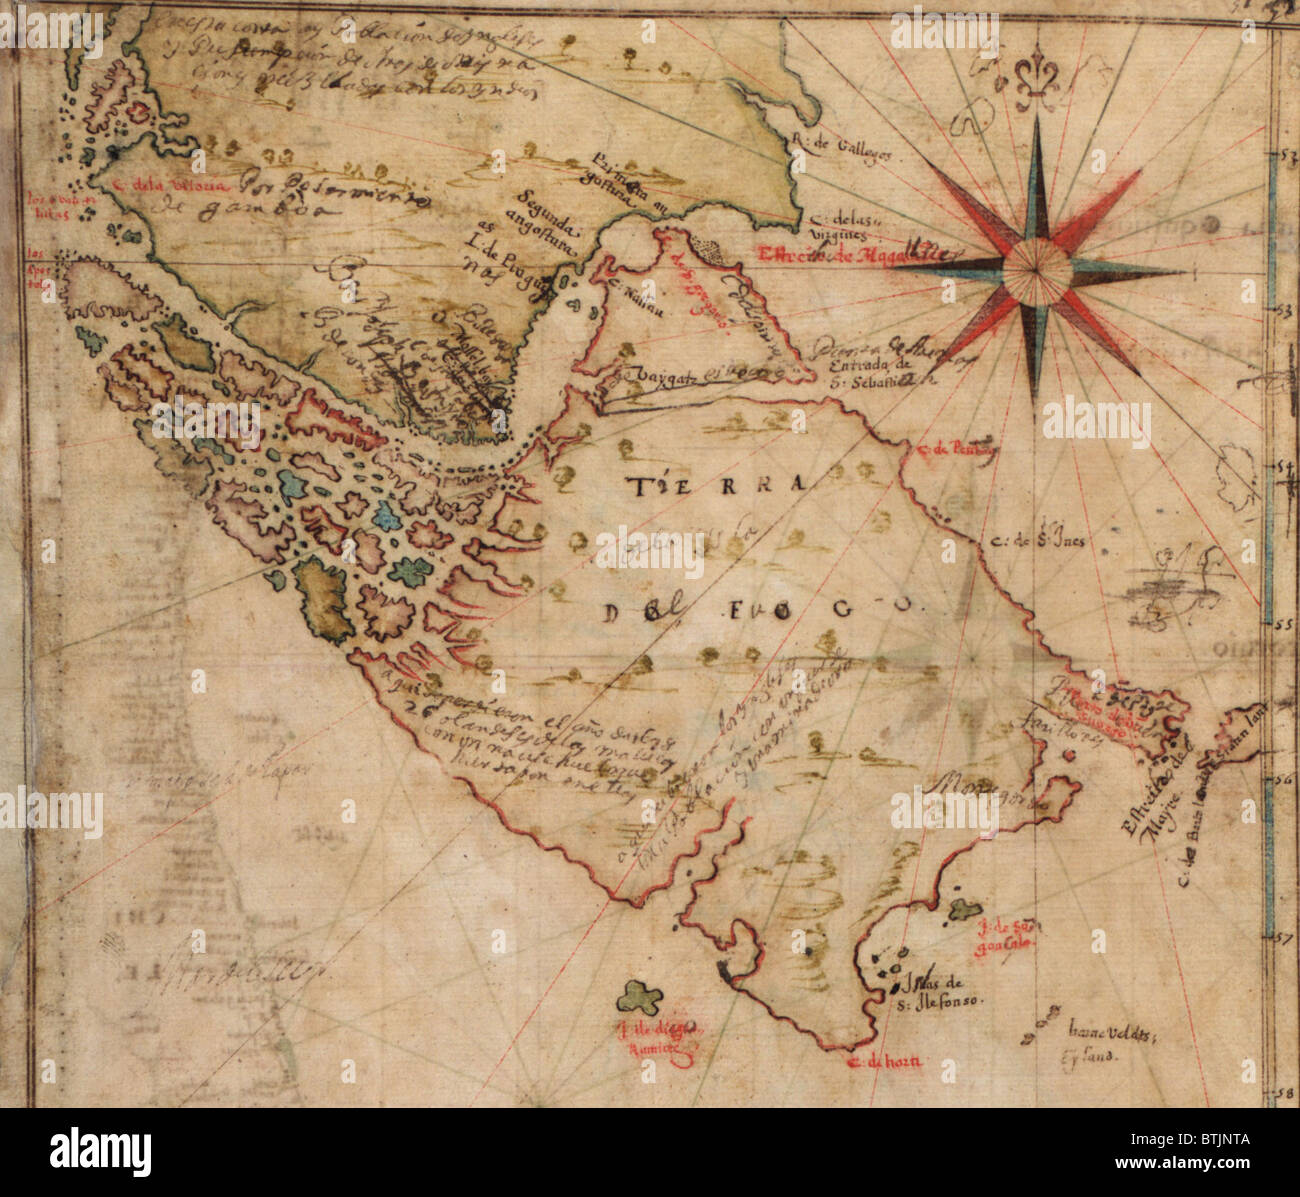 Tip Of South America Map.1630 Map Of Strait Of Magellan At The Southern Tip Of South America